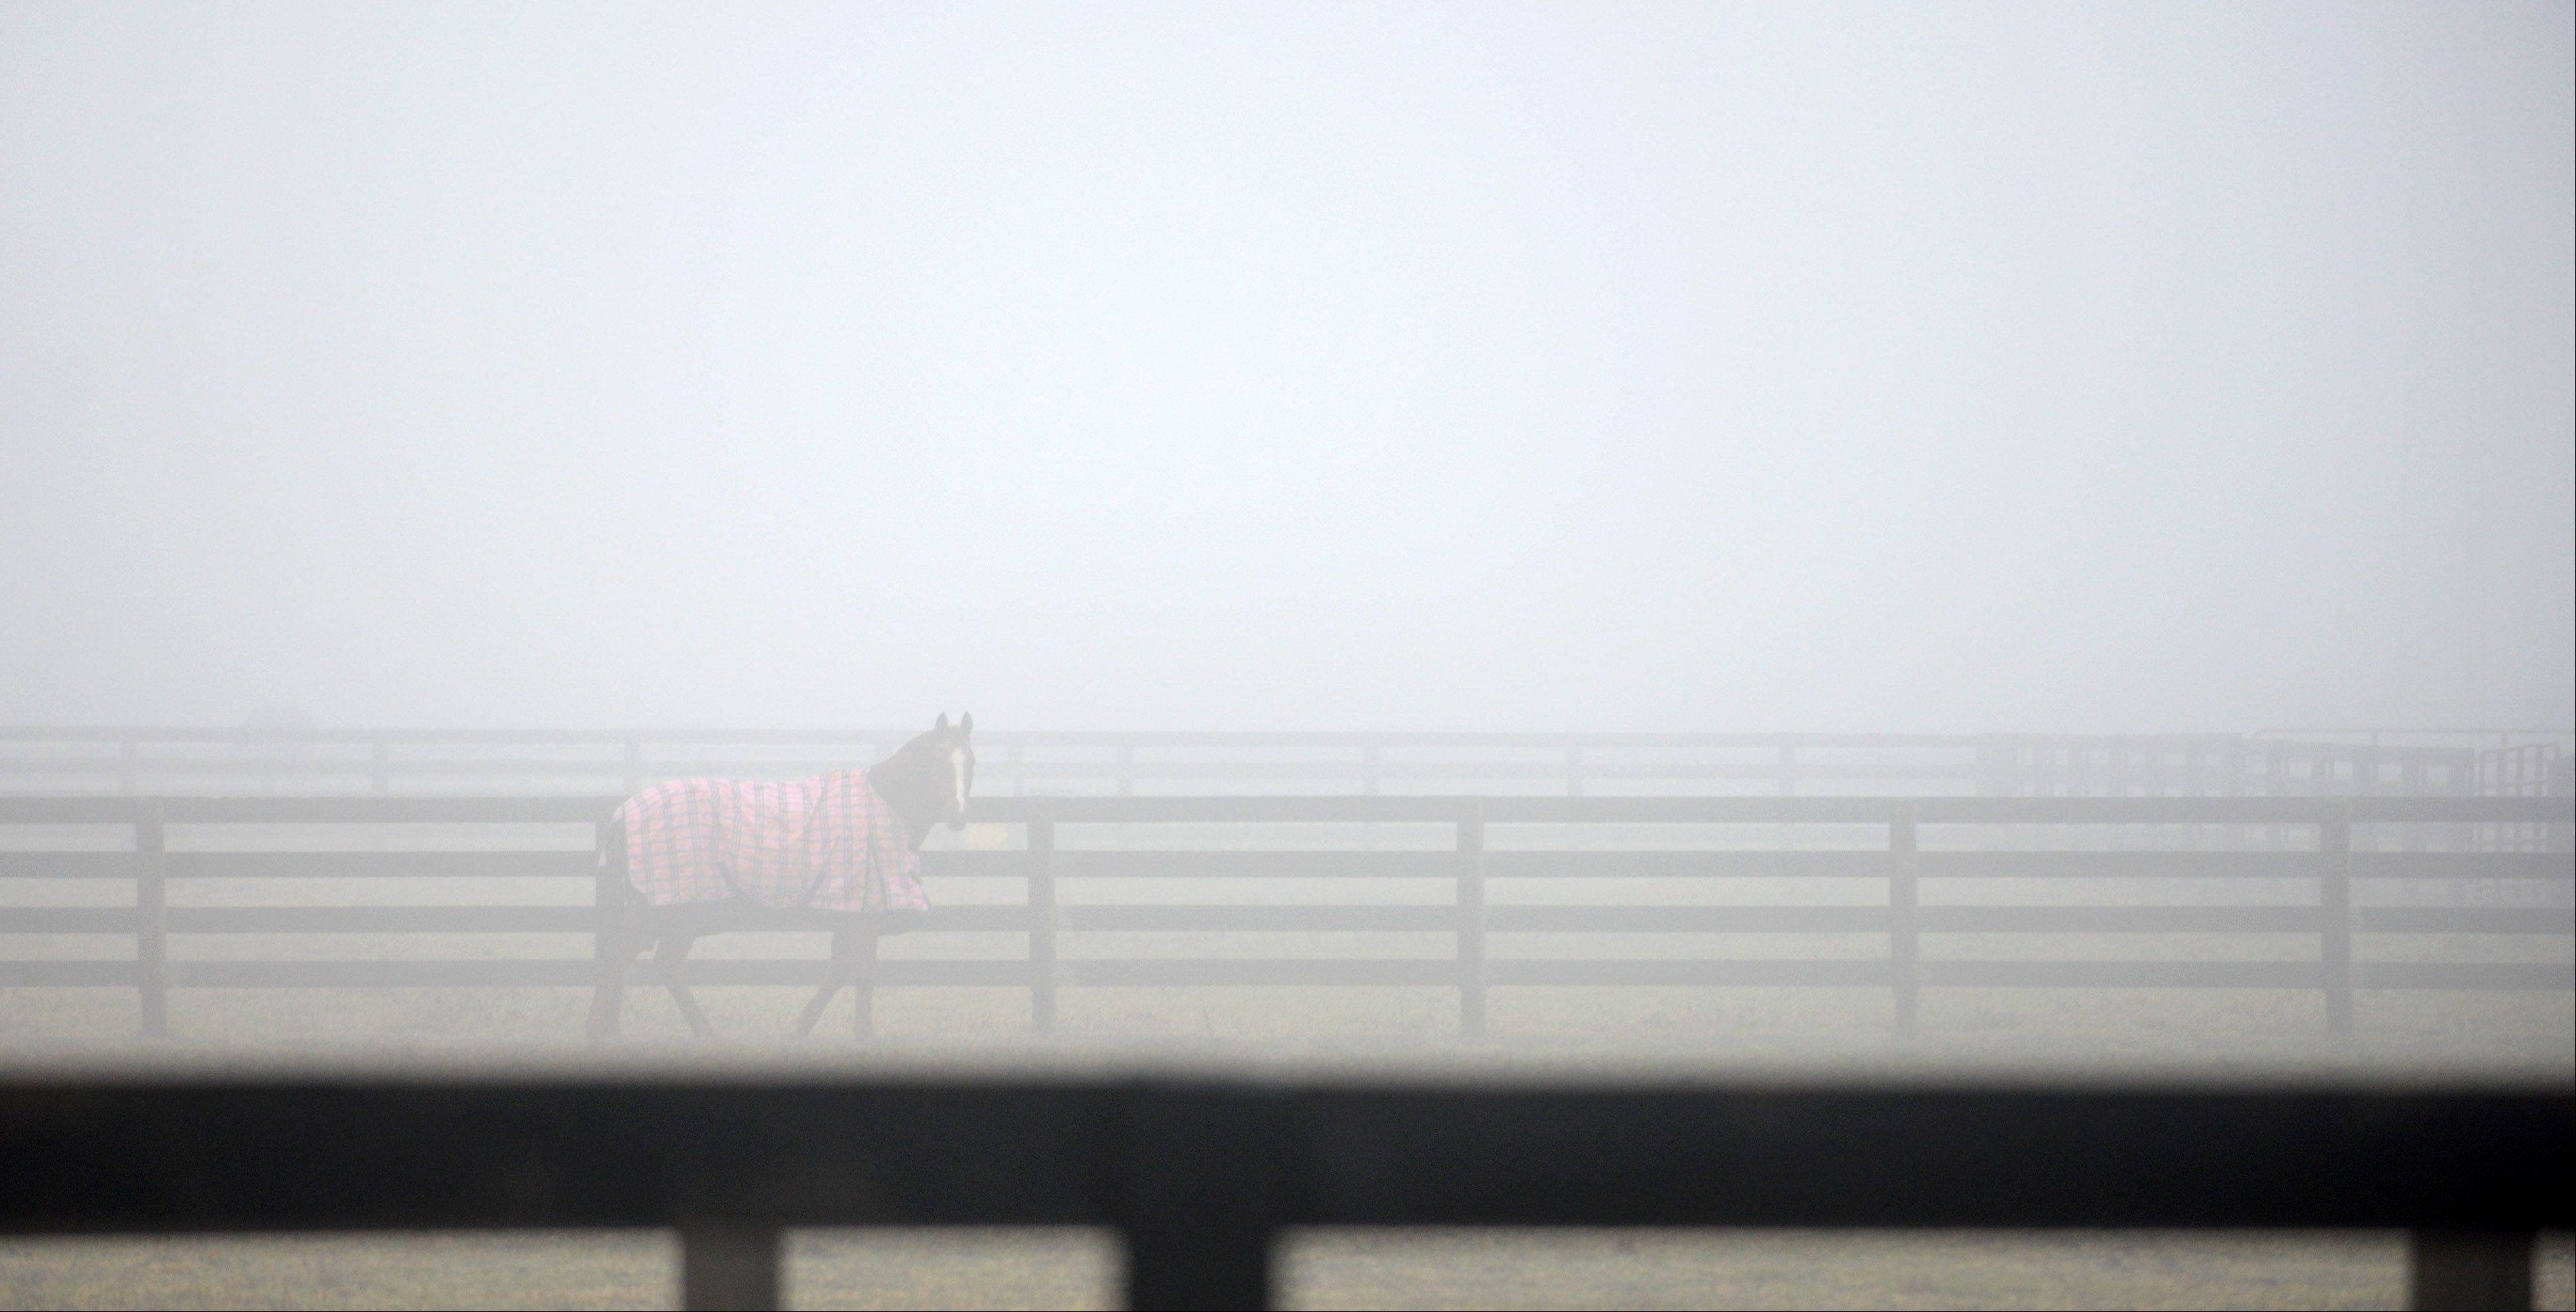 A horse walks along a fence line in a fog-shrouded field in rural Elgin Wednesday, where temperatures hit the mid-50s. Thursday's forecast calls for clearer skies but high temperatures about 20 degrees cooler, according to AccuWeather.